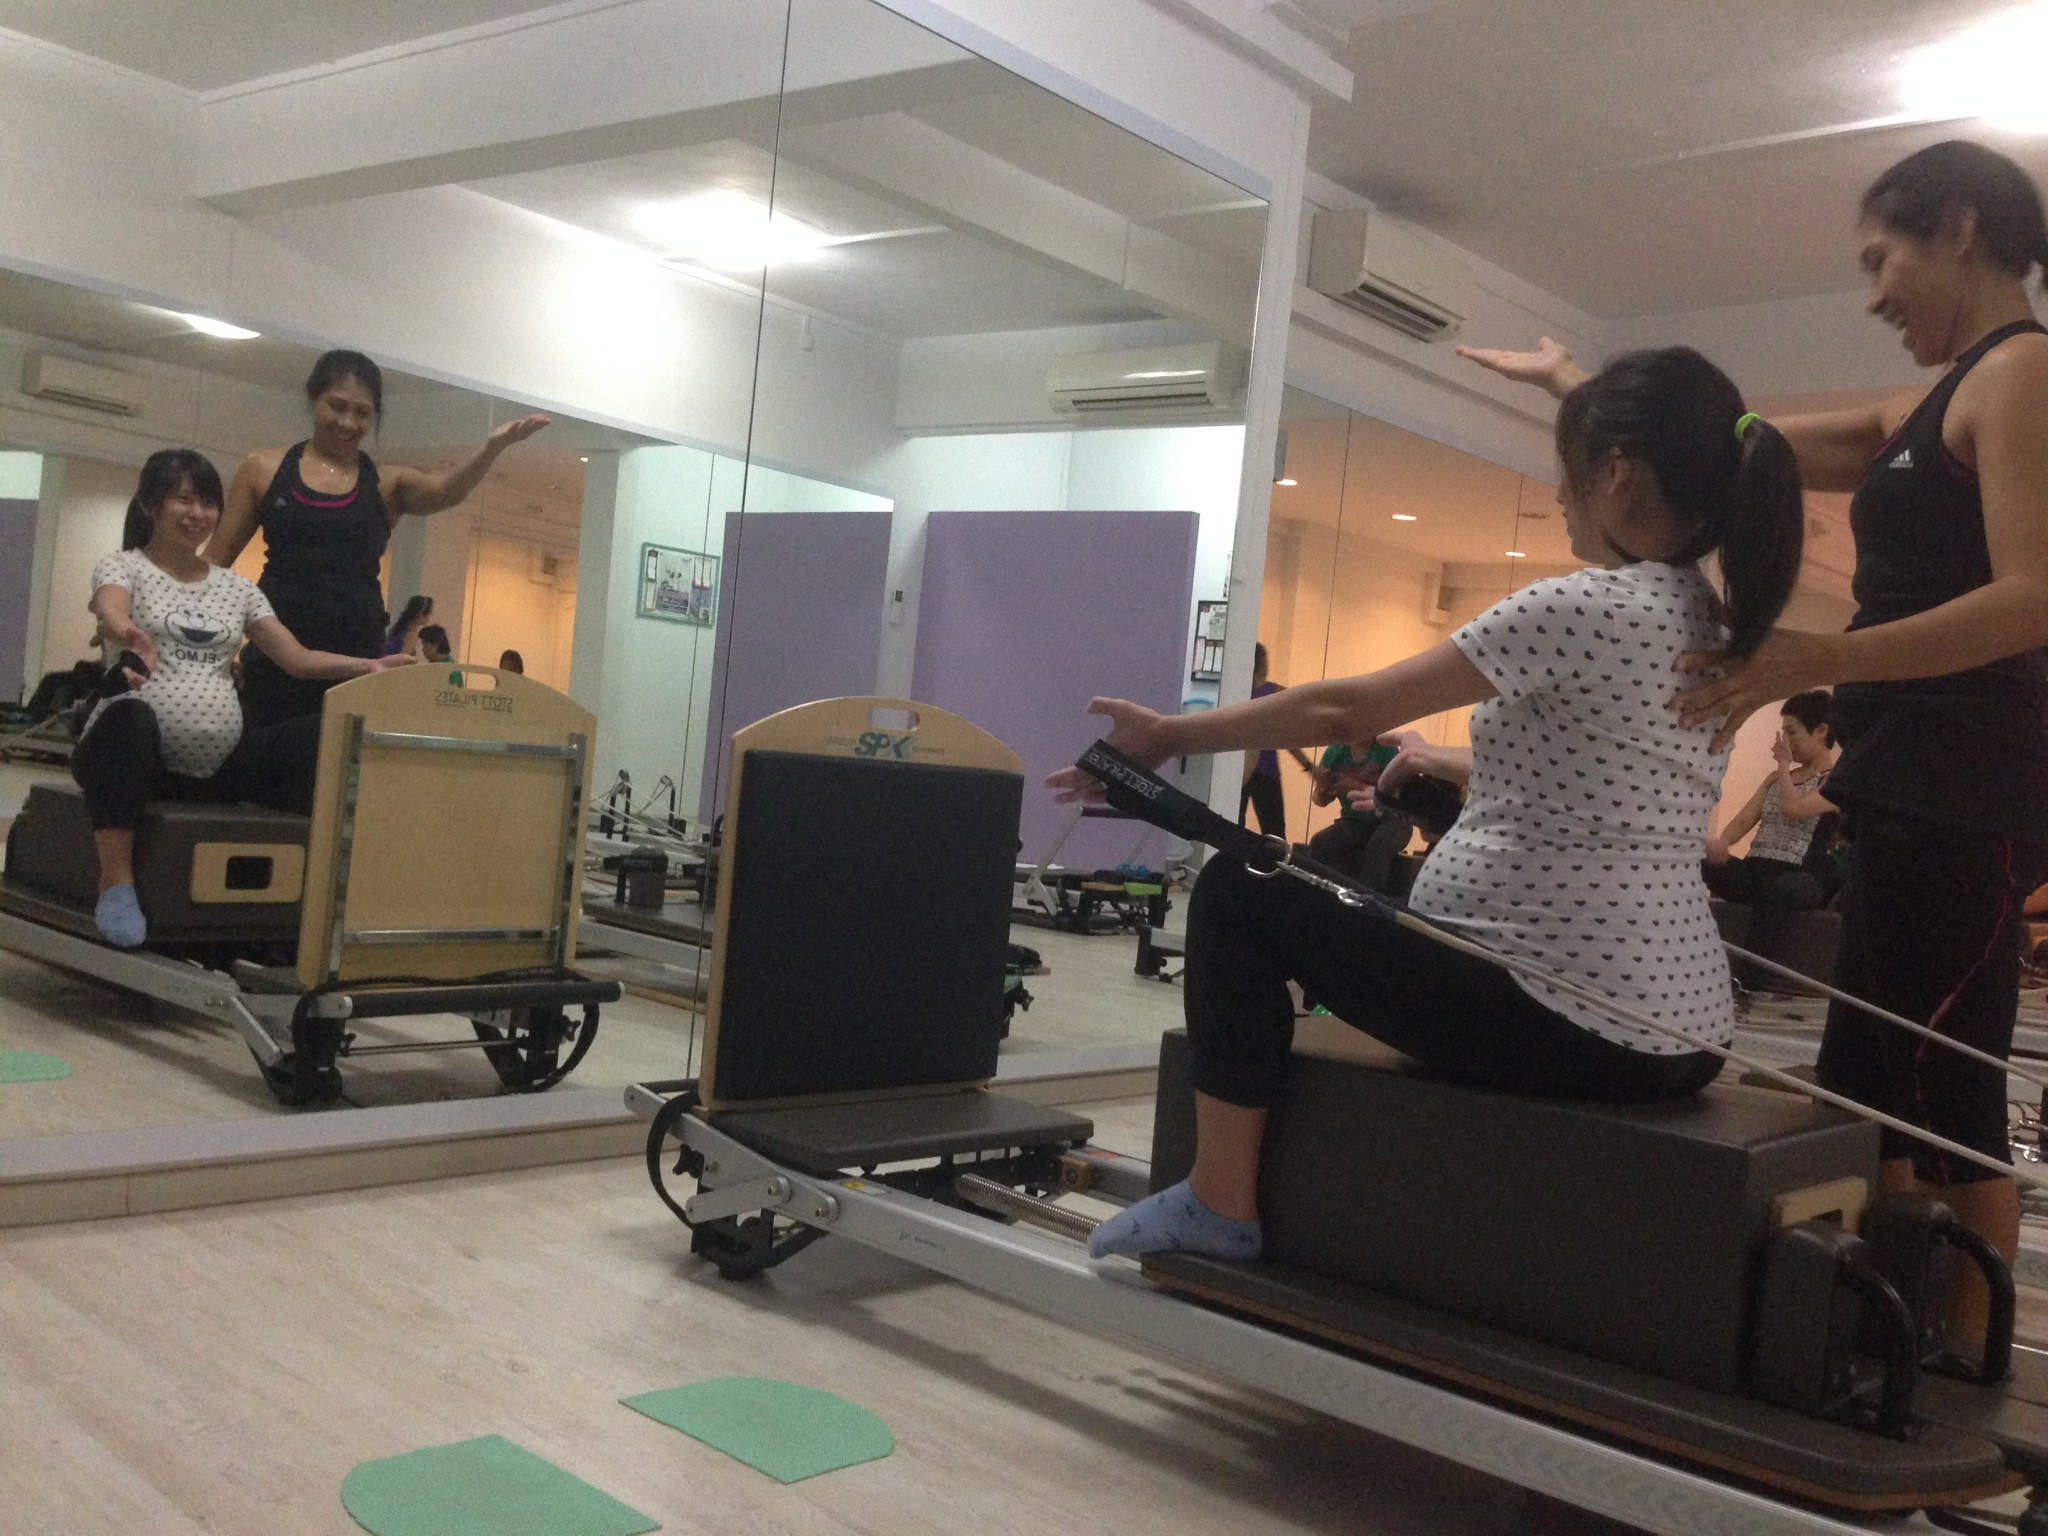 reformer-prenatal-pilates-effective-safe